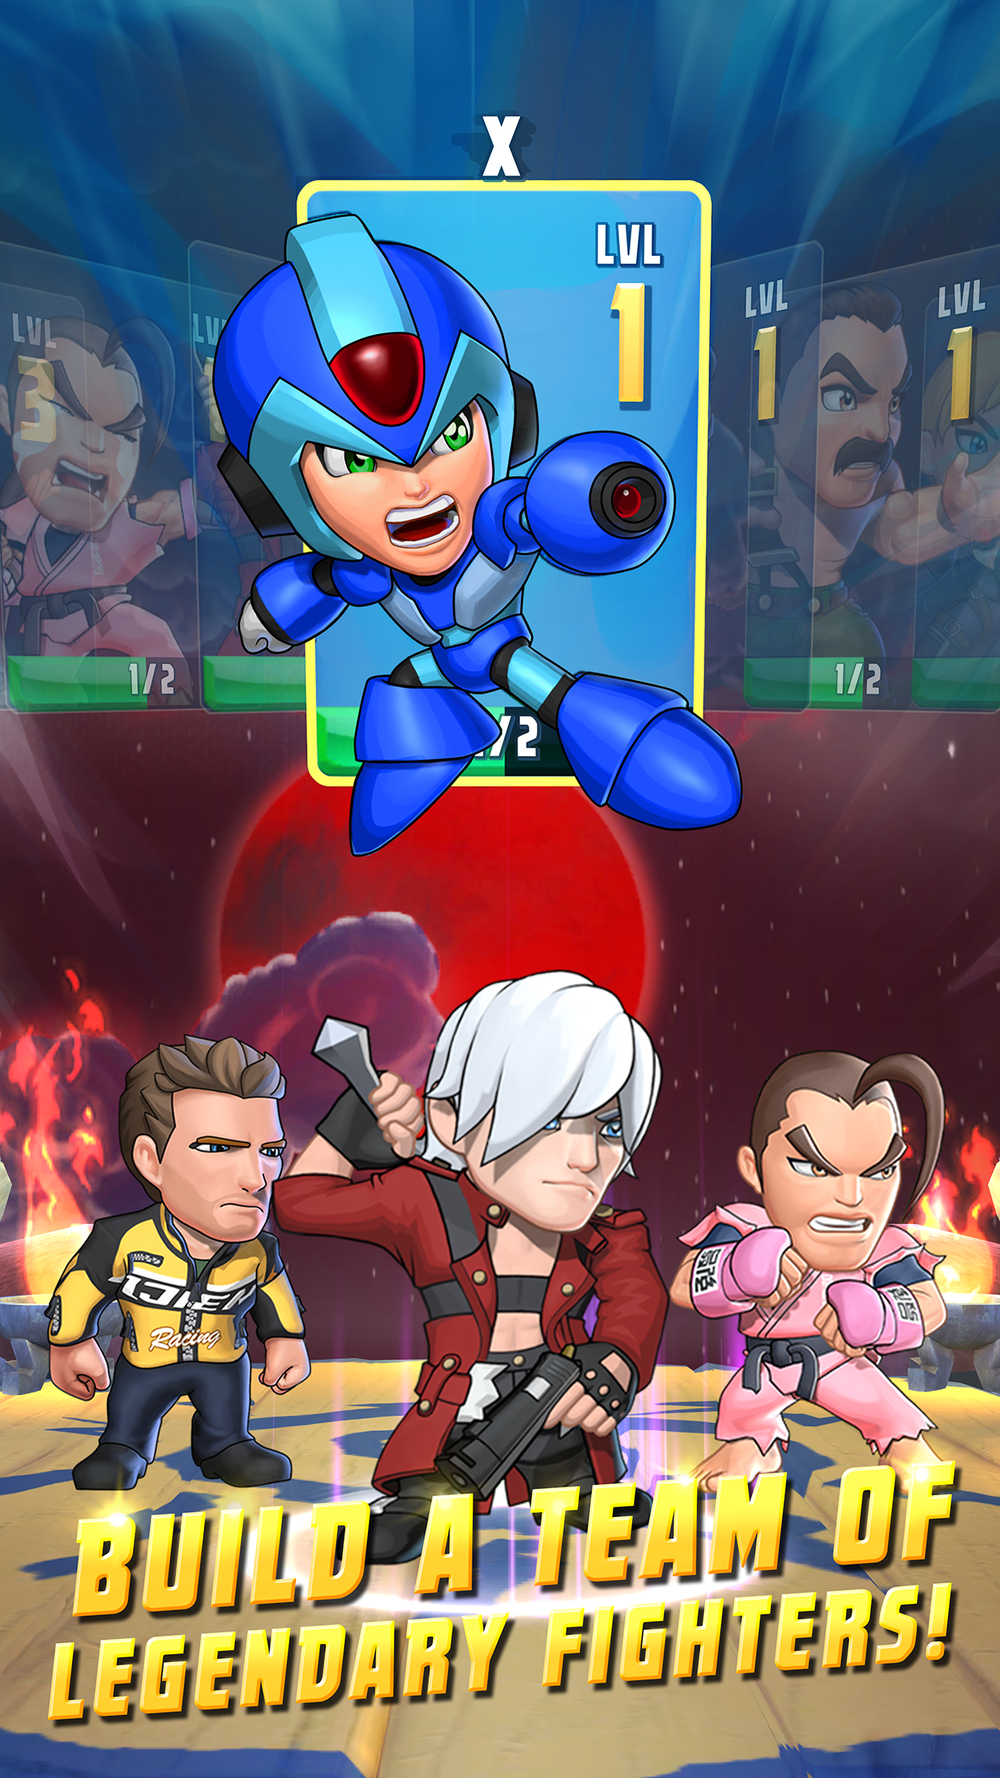 PuzzleFighterScreen5.png